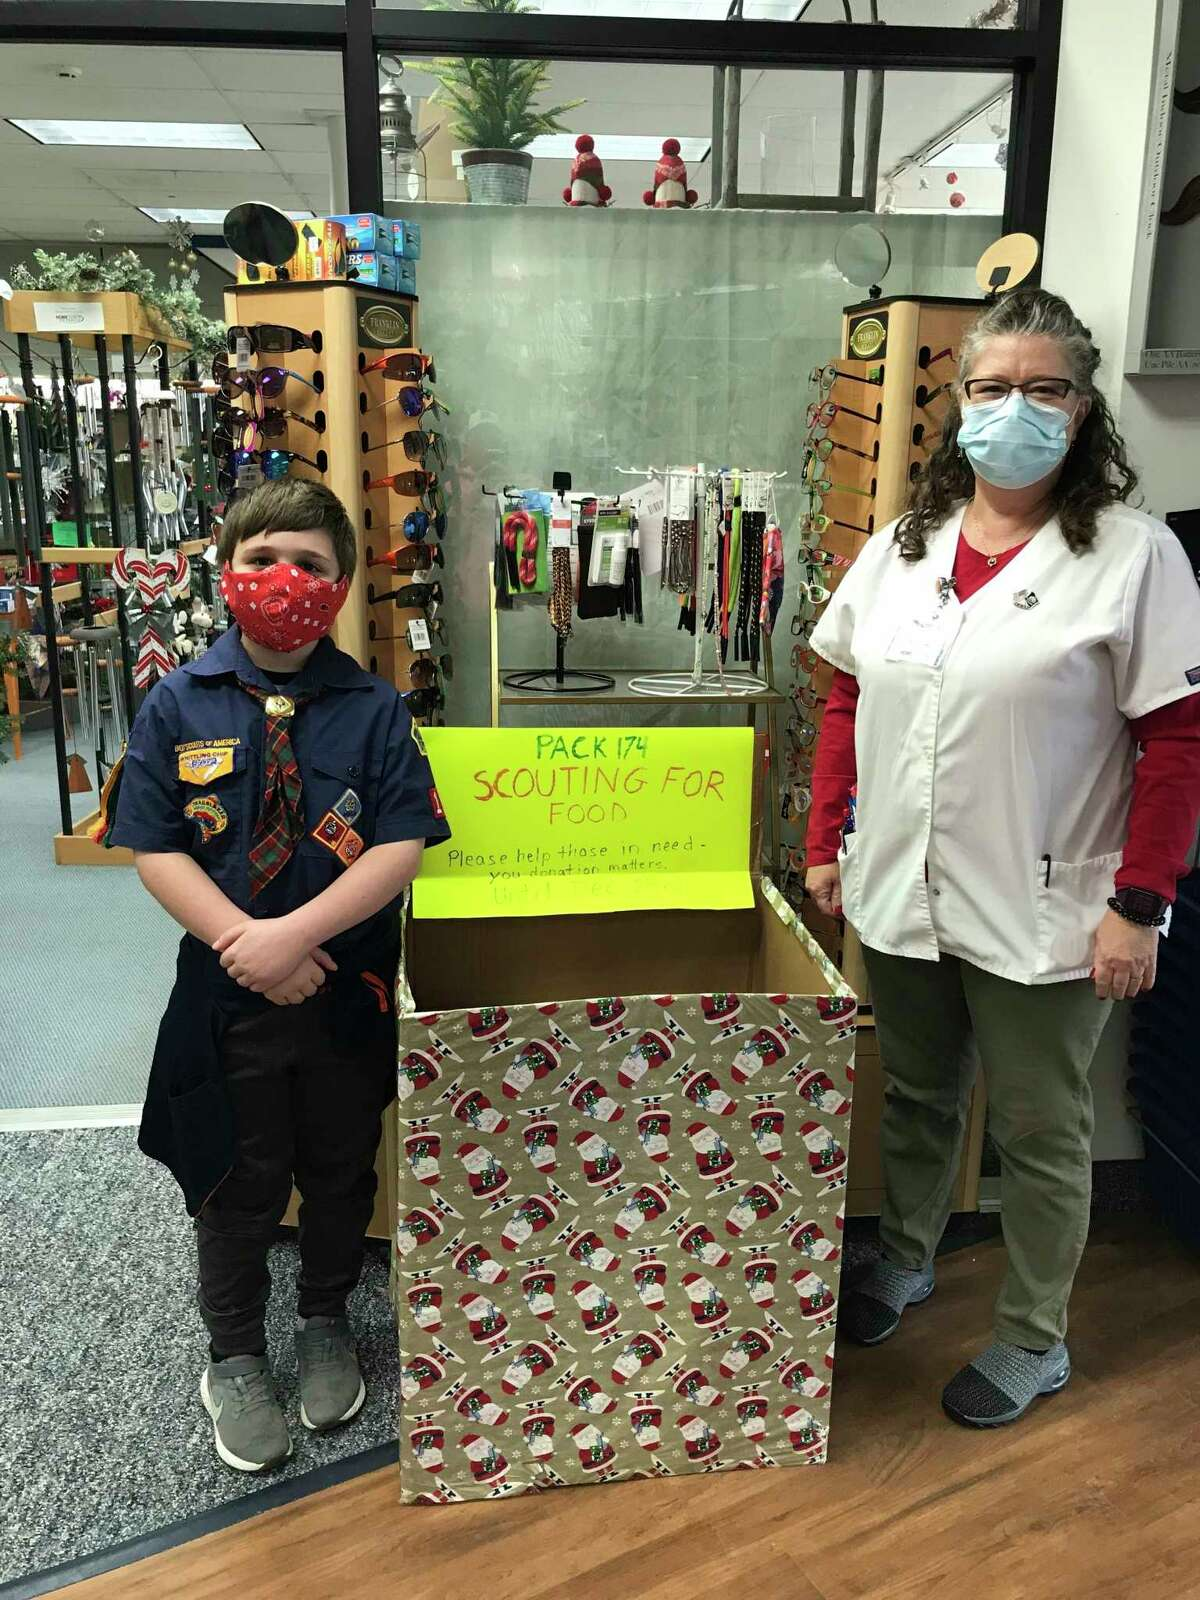 Hometown Pharmacy food donation box is collected by Scout Troop 174. (Submitted to Herald Review)